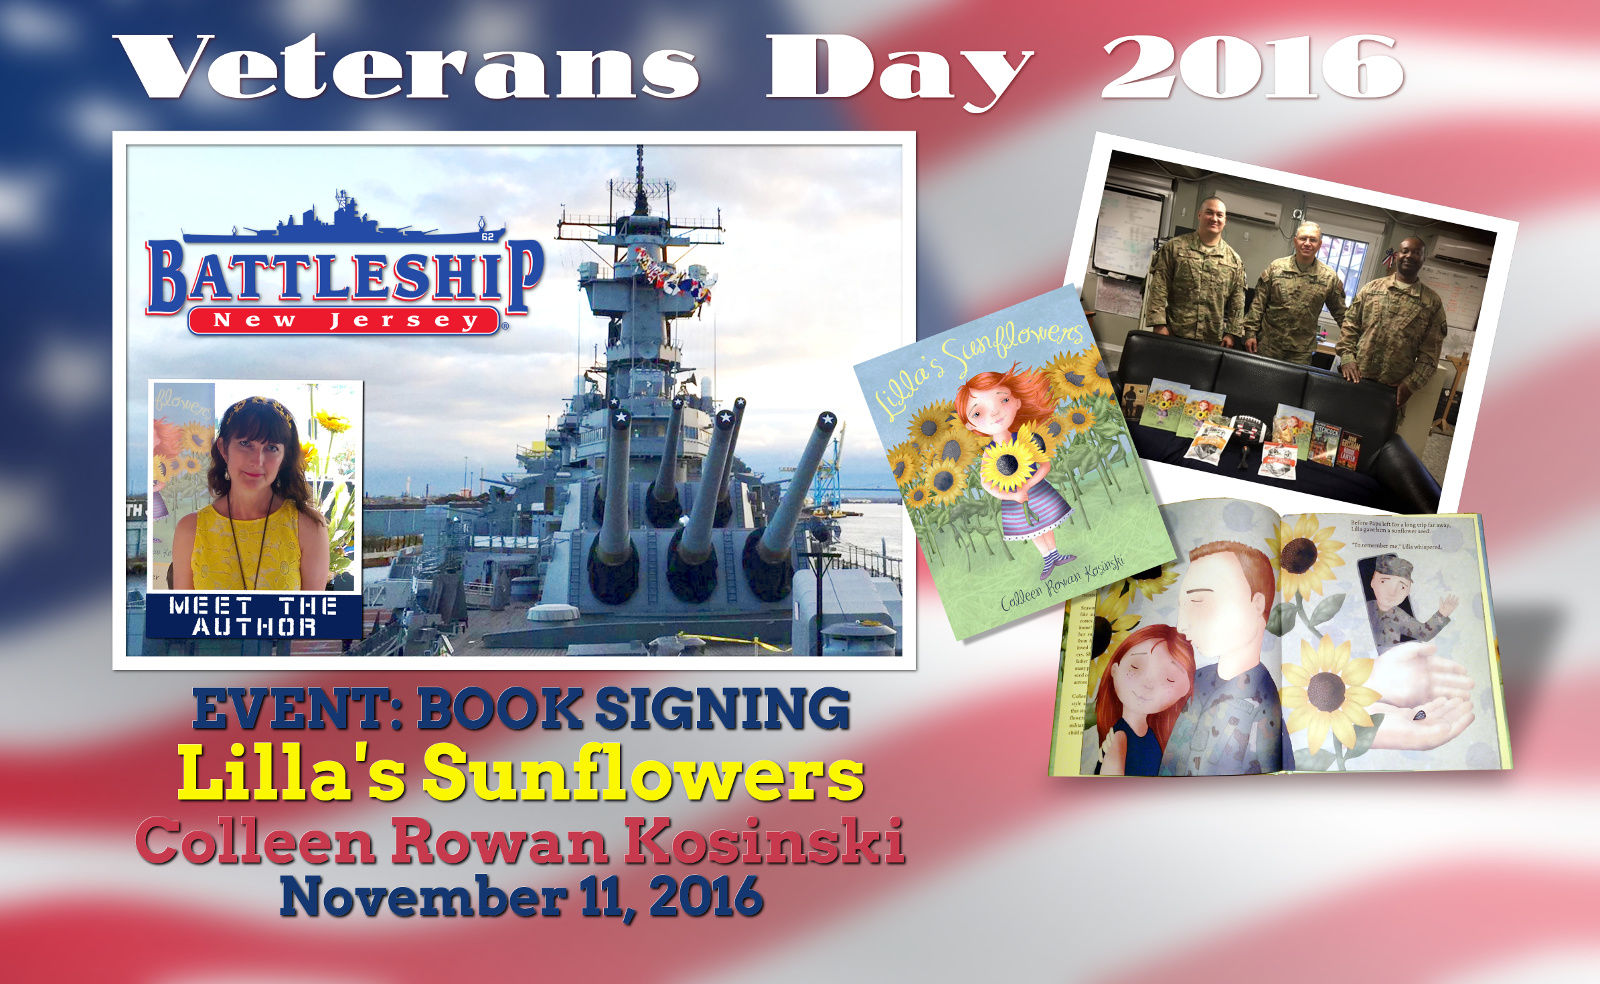 Veterans Day Battleship New Jersey